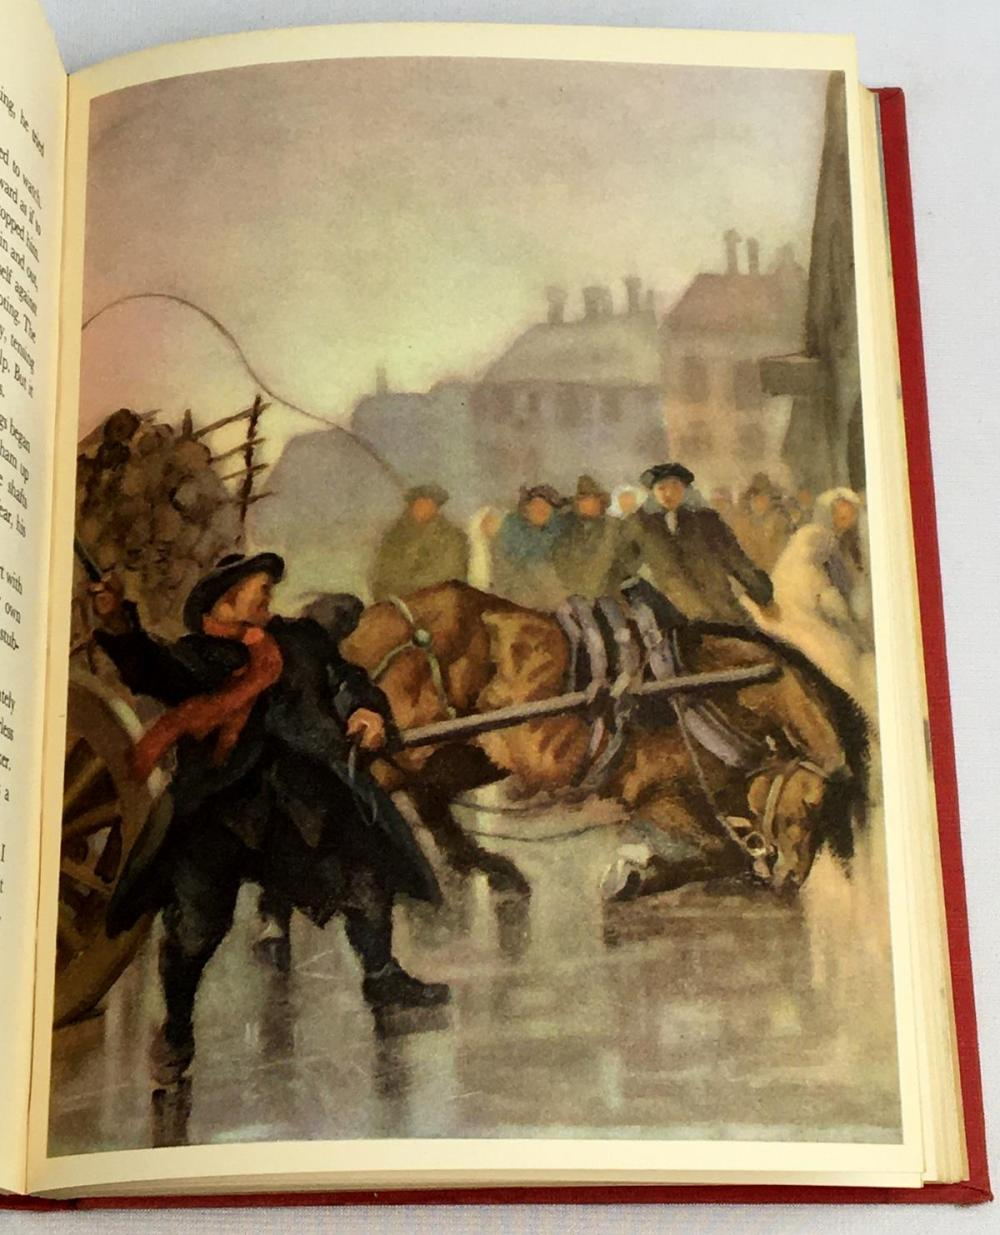 1948 King of The Wind by Marguerite Henry Illustrated FIRST EDITION